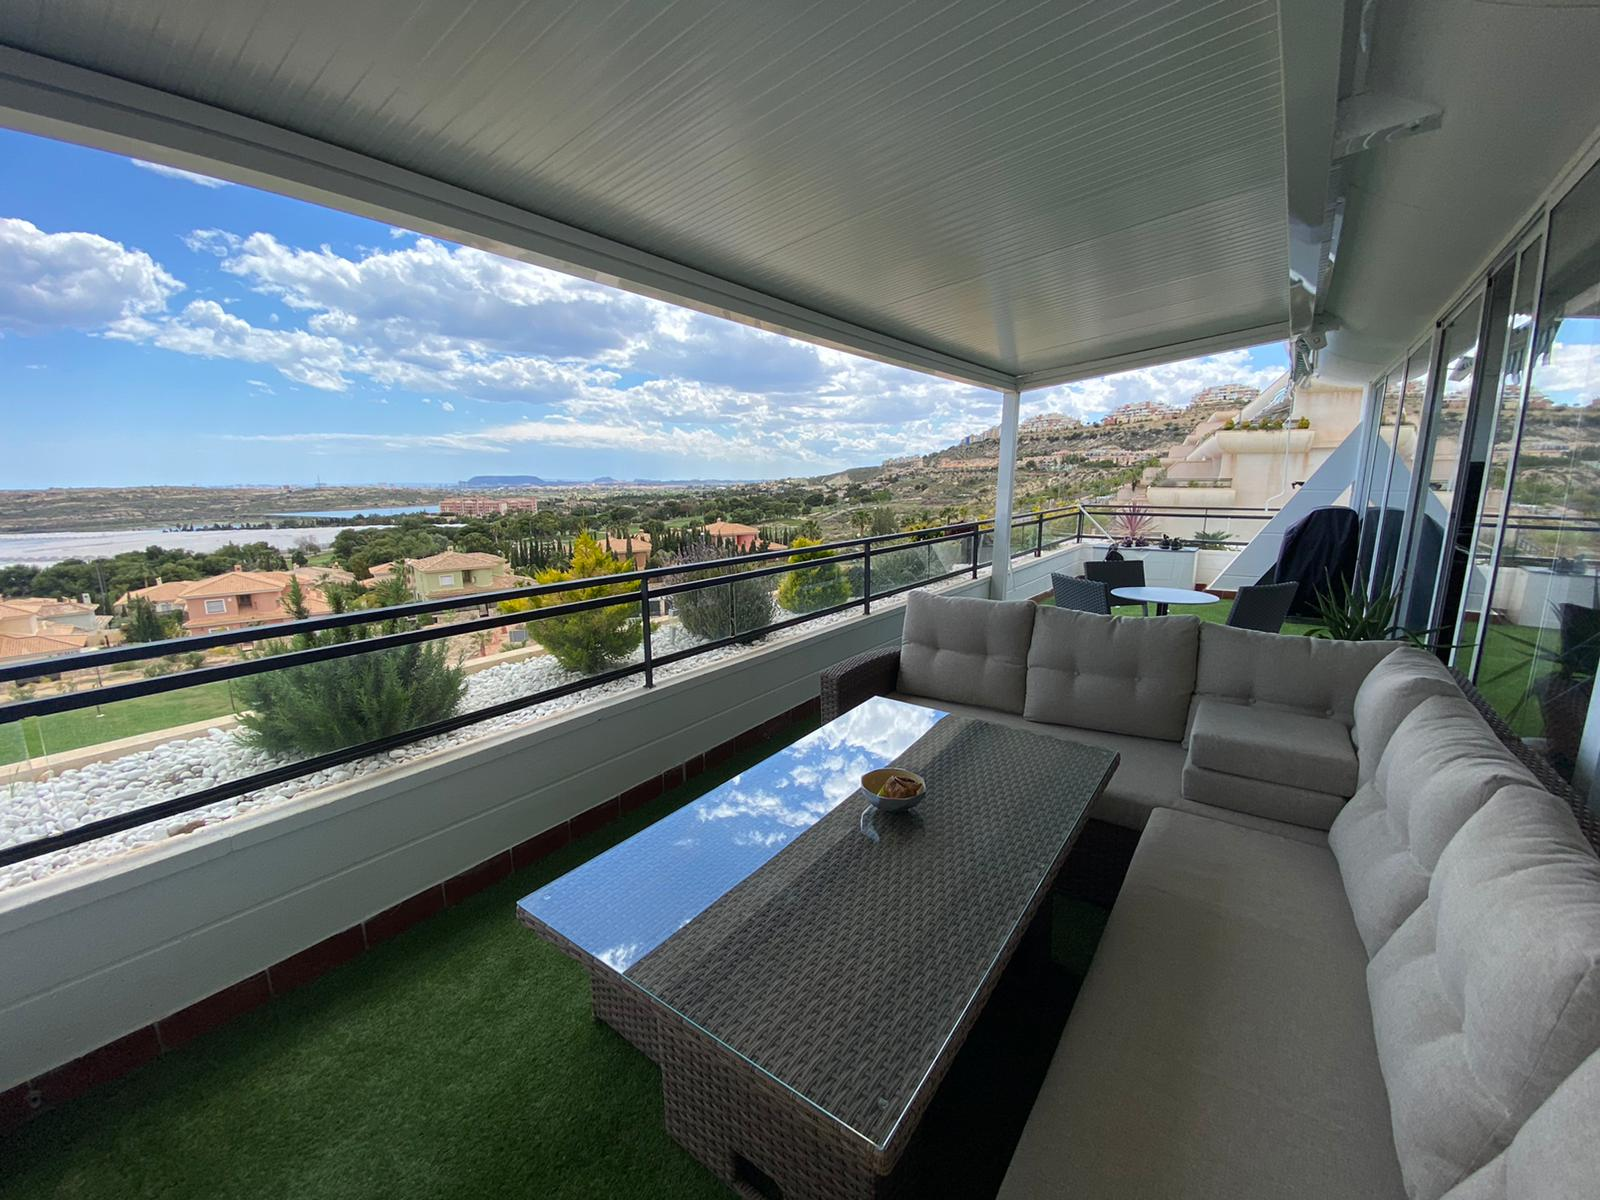 Fantastic 2 bedroom penthouse for sale in Bonalba Golf Resort (20 mins from Alicante airport)